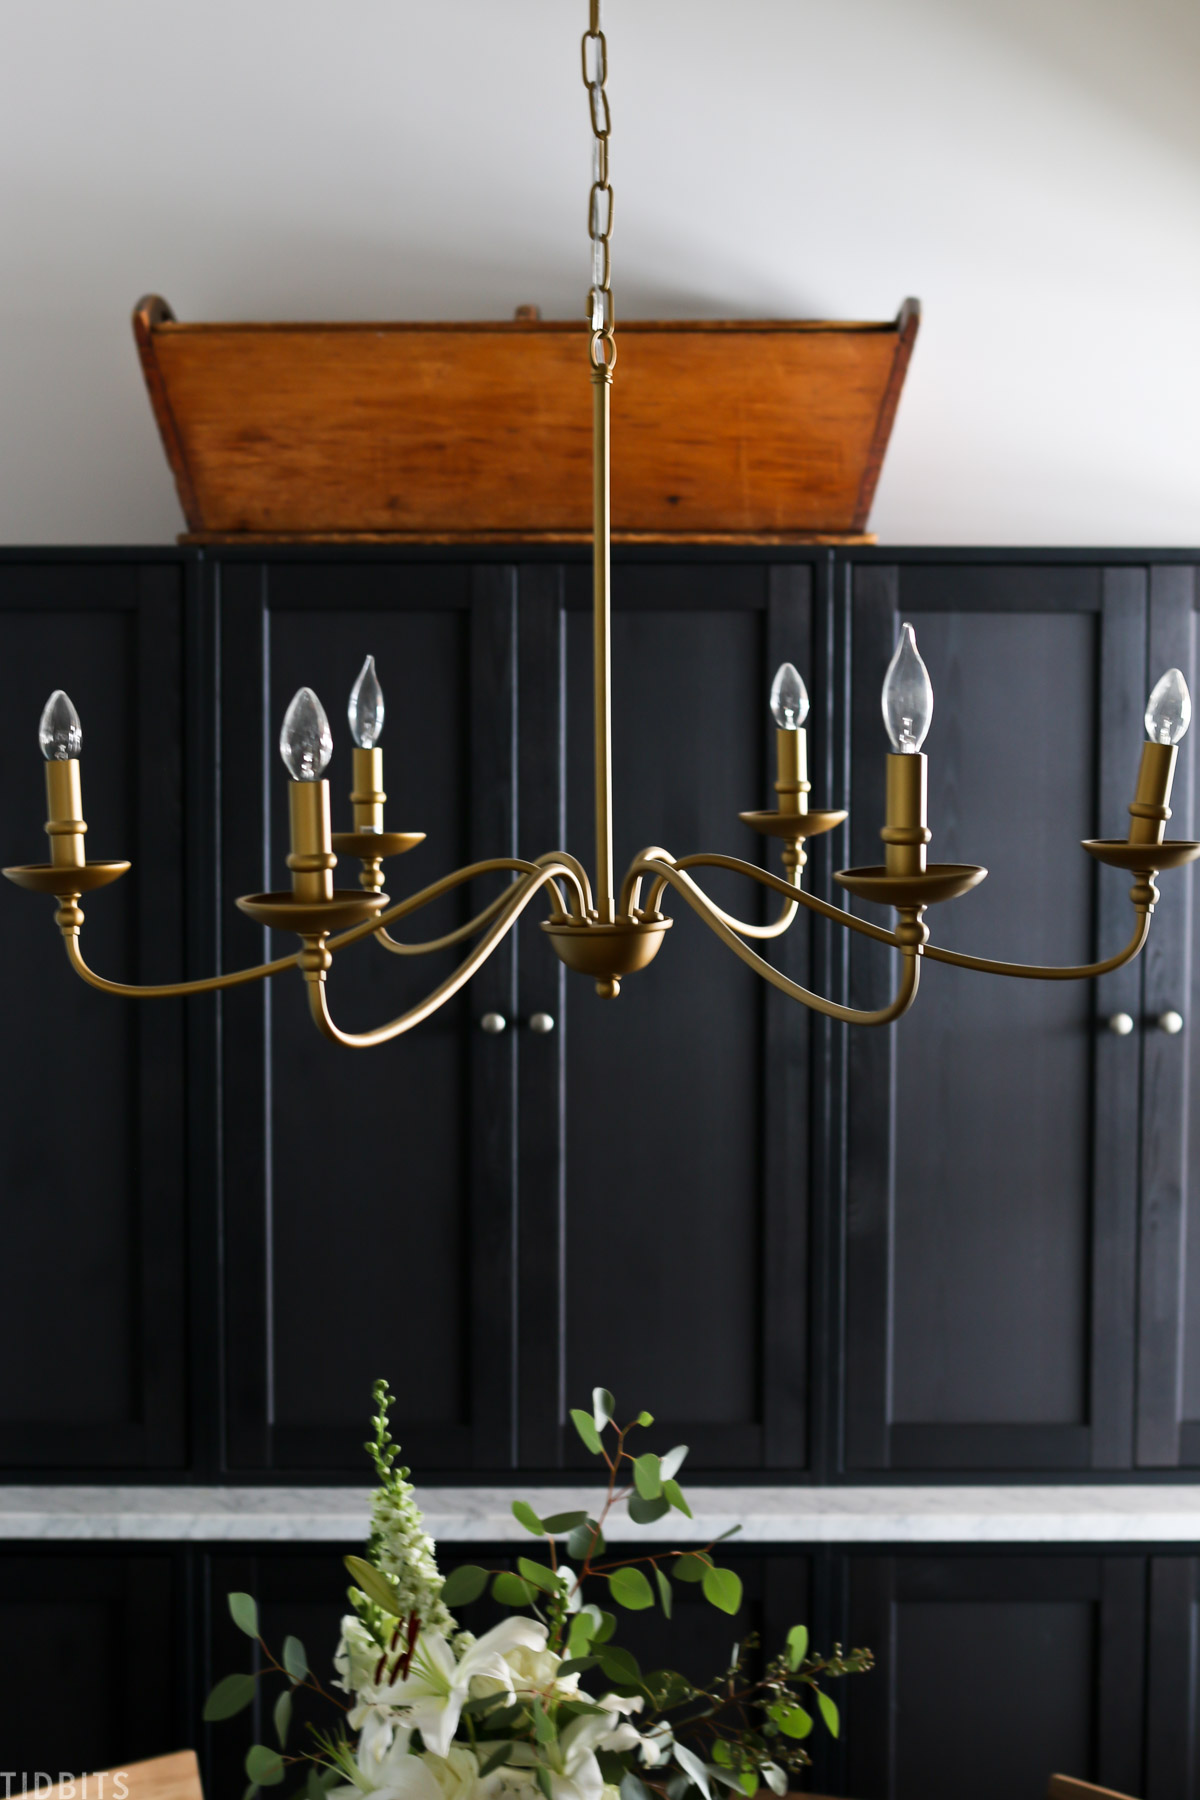 chandelier hanging in homeschool room with havsta cabinets and dough trough in the background